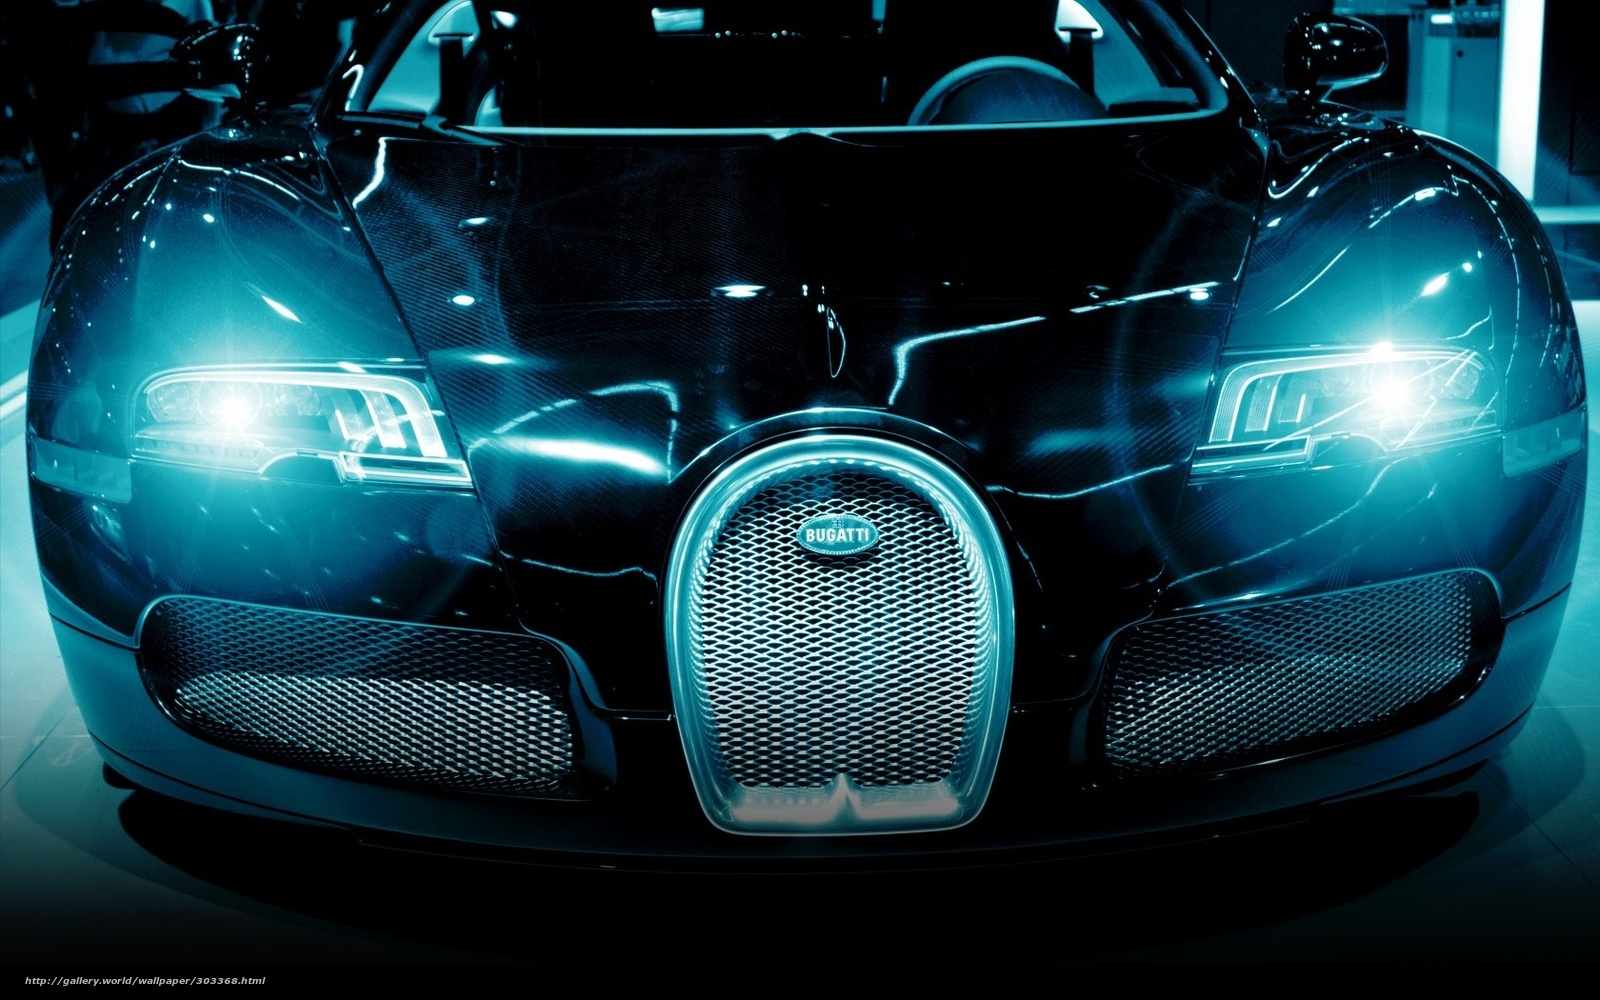 Bugatti Car Hd Wallpapers Free Download For Android Mobile: MA Lighting Wallpaper